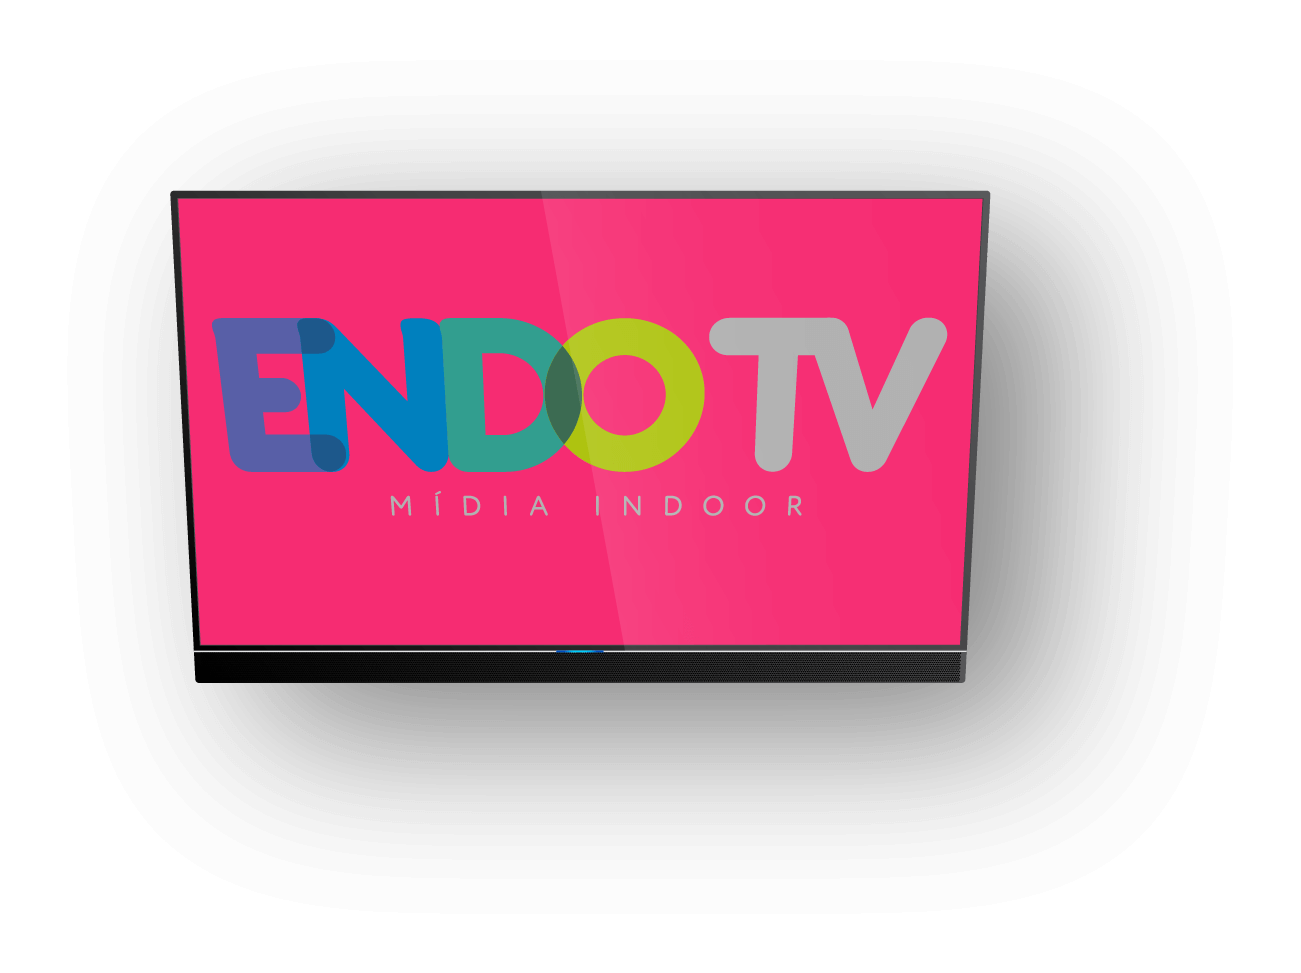 ENDOTV - Mídia Indoor para Endomarketing